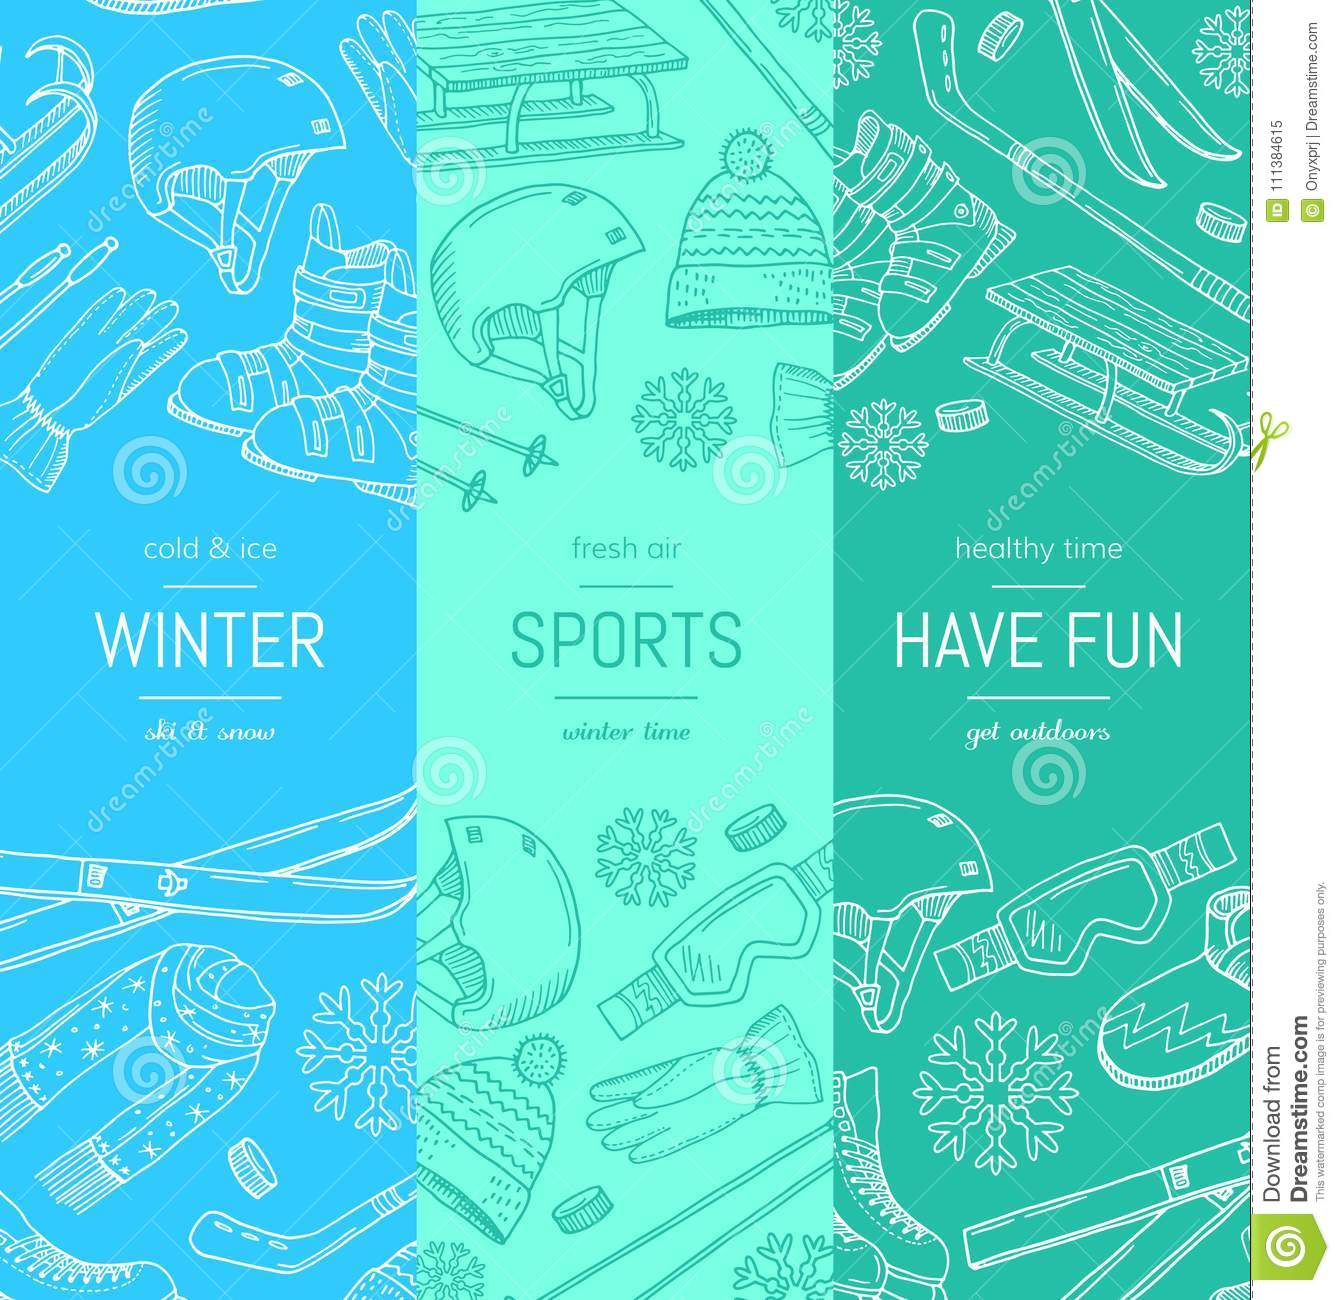 Vector hand drawn winter sports equipment and attributes vertical download vector hand drawn winter sports equipment and attributes vertical banner templates stock vector illustration maxwellsz